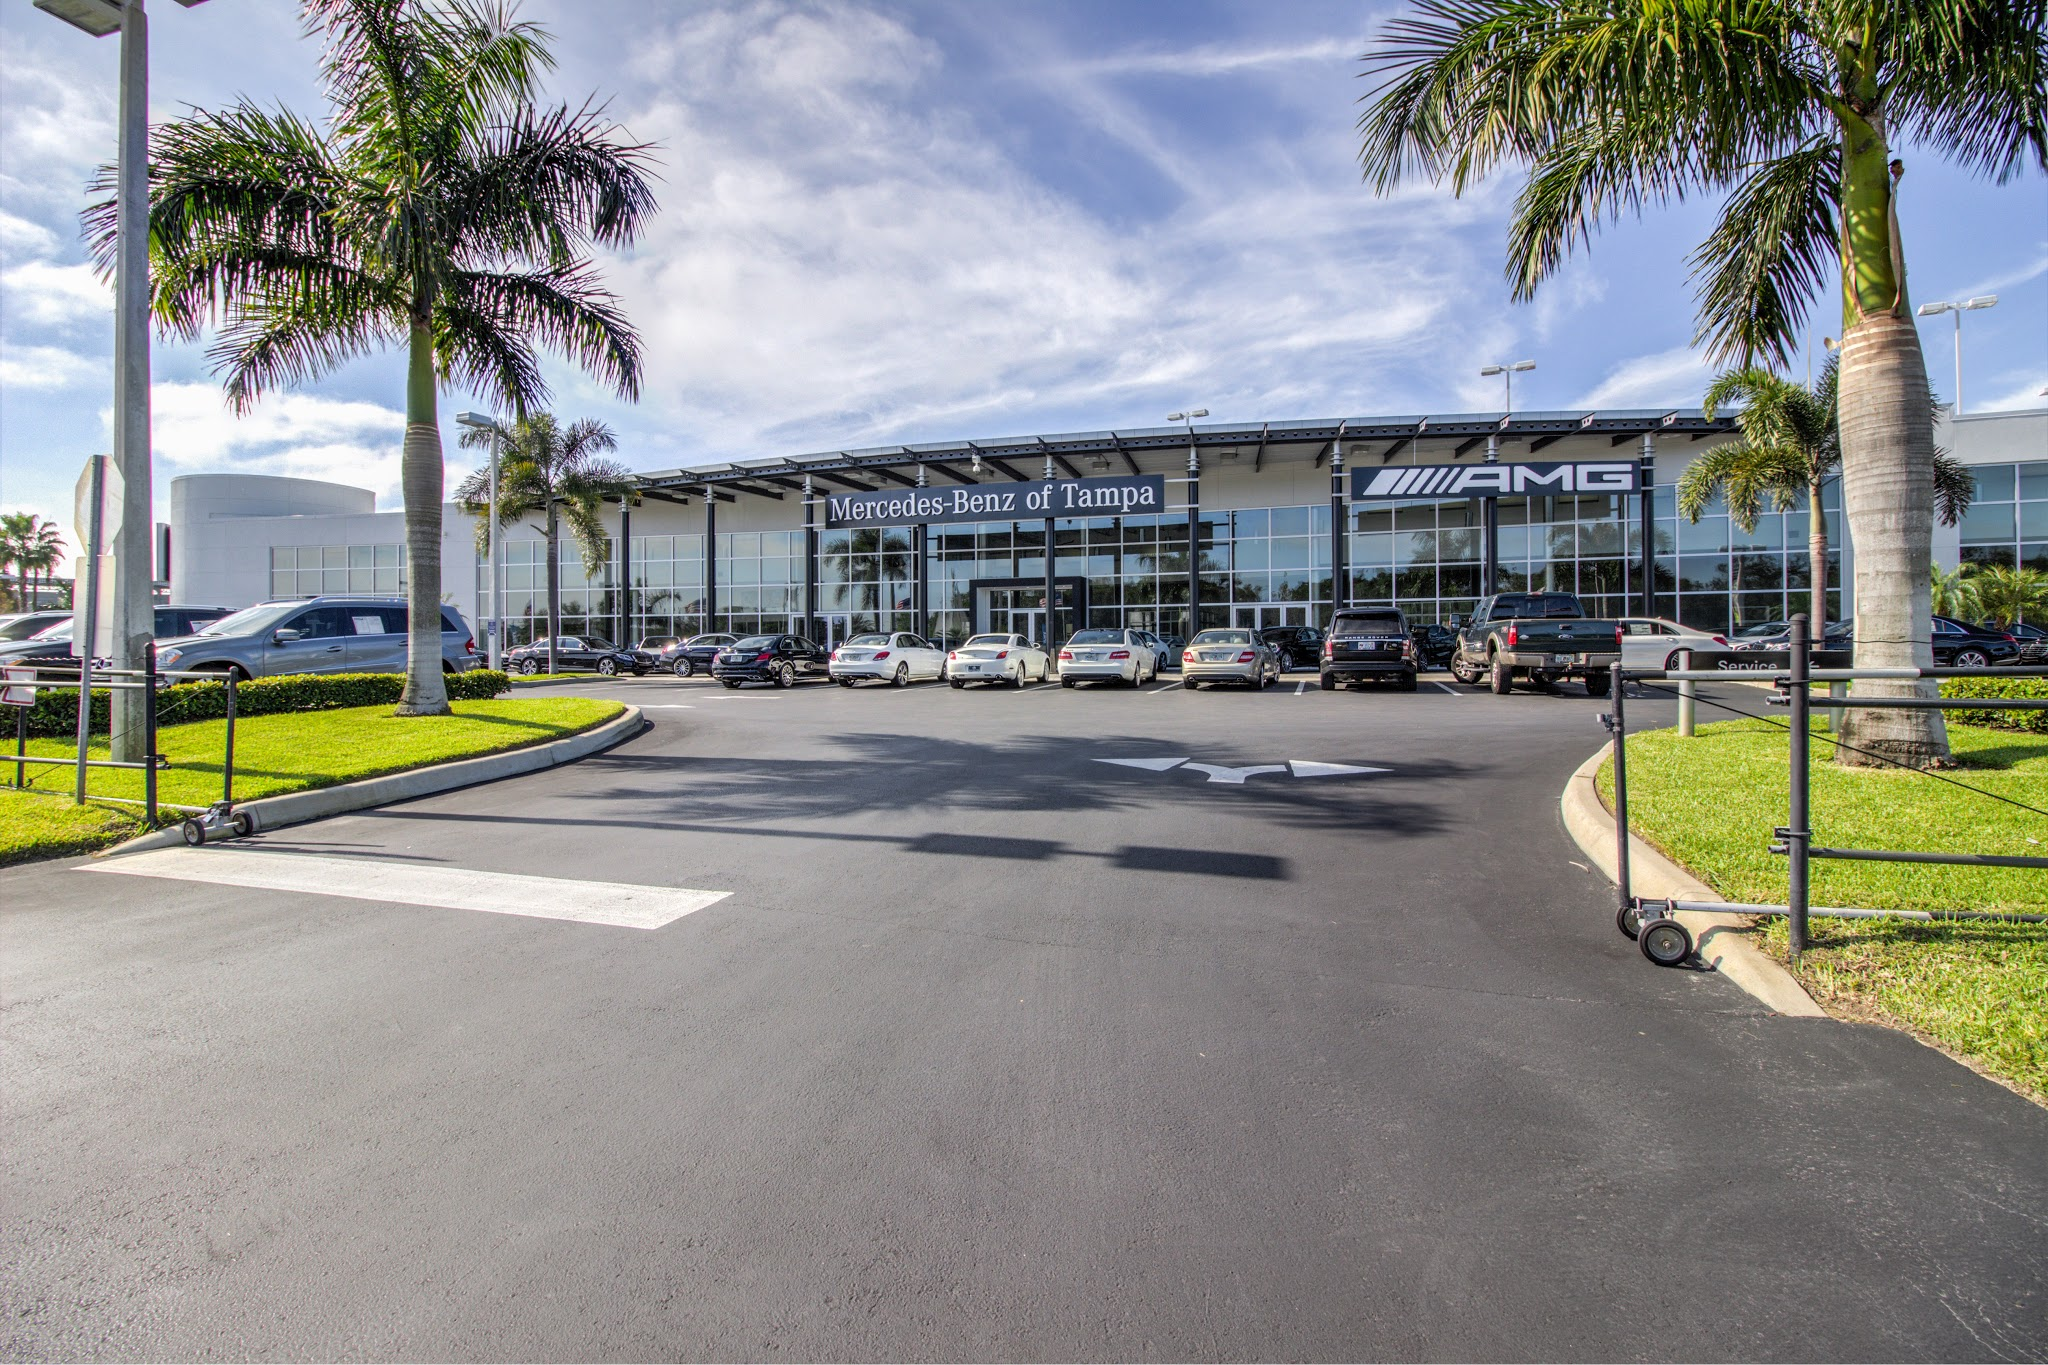 Mercedes benz of tampa tampa florida fl for Mercedes benz dealer in tampa fl